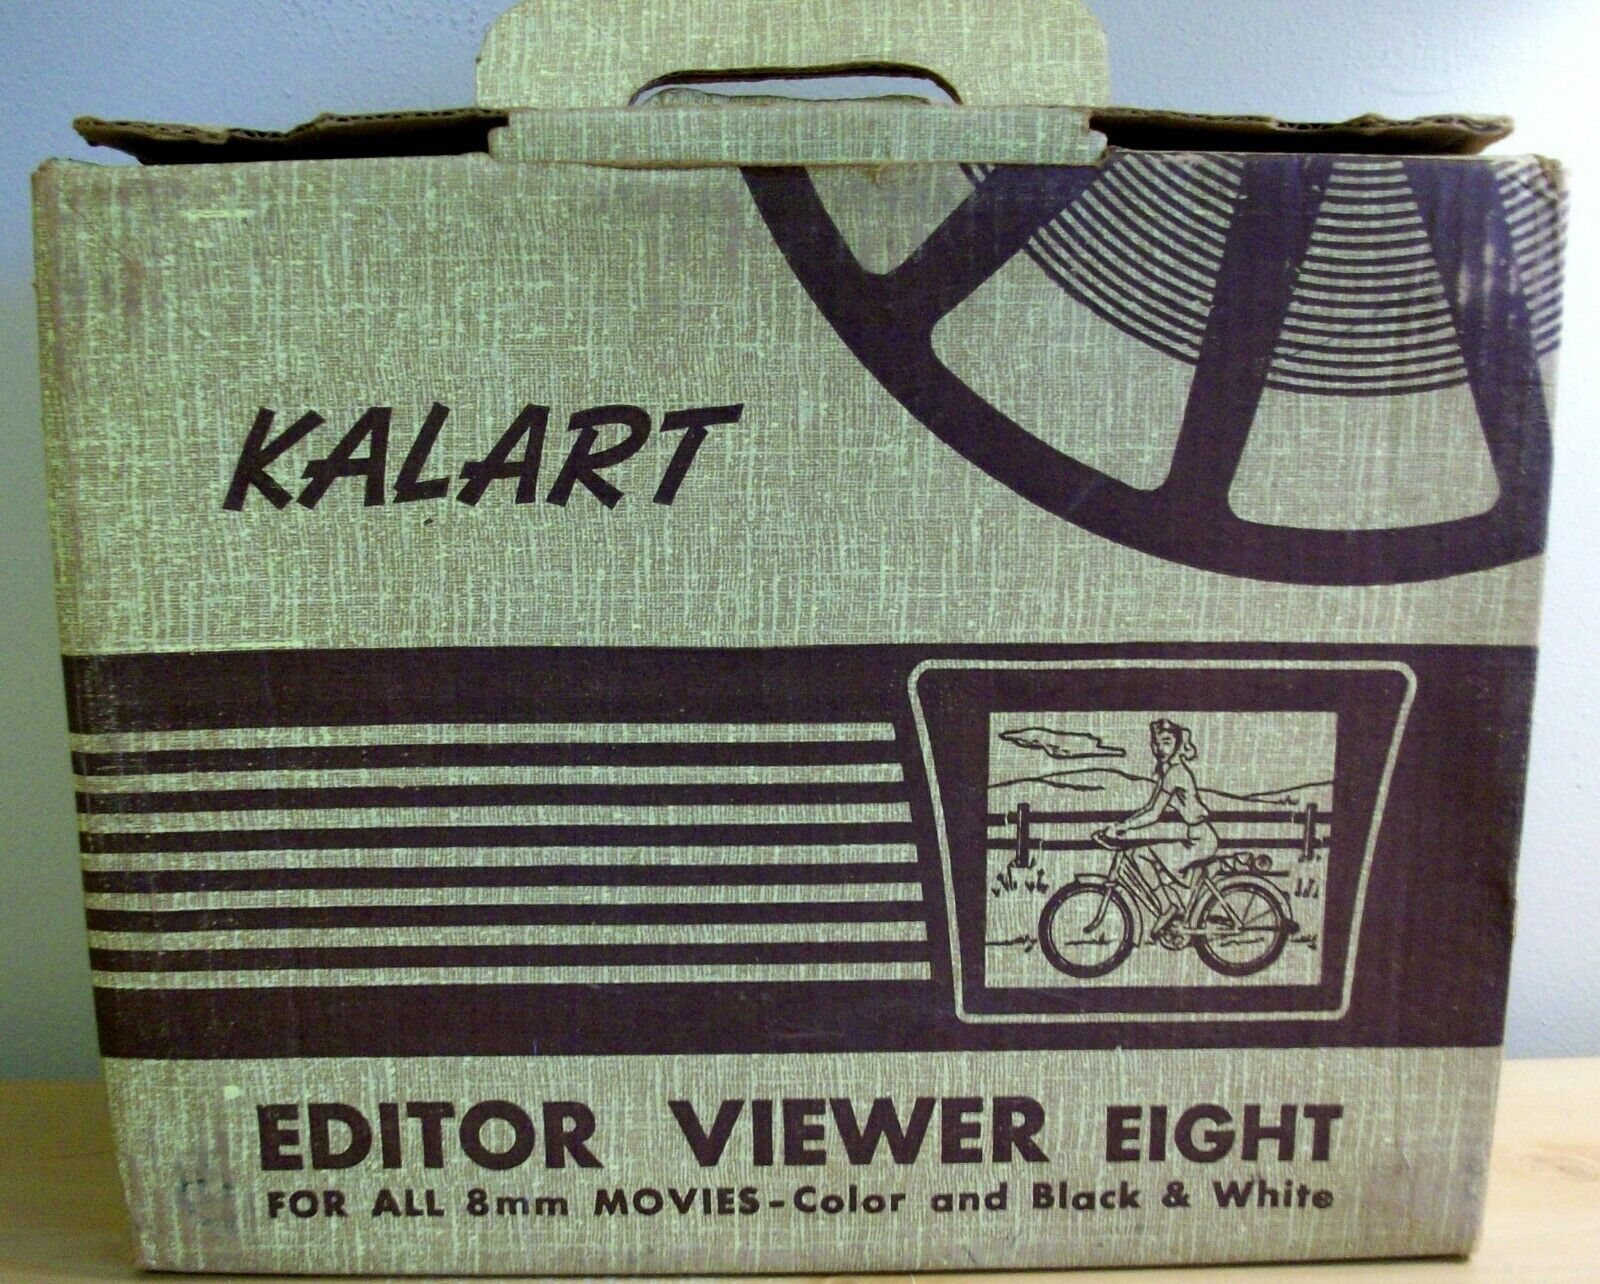 Vintage Kalart Editor Viewer Eight For All 8mm Movies B W And Color Bakelite - $19.95